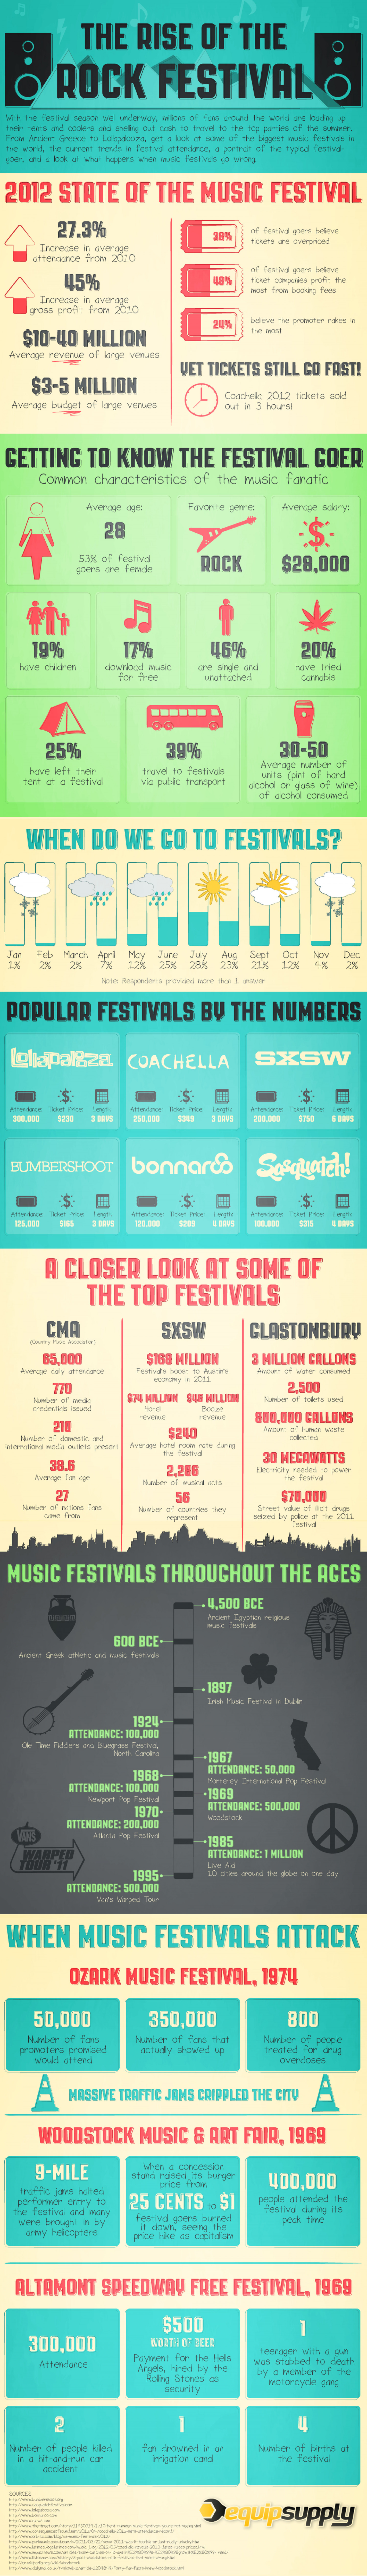 Music Festival Infographic